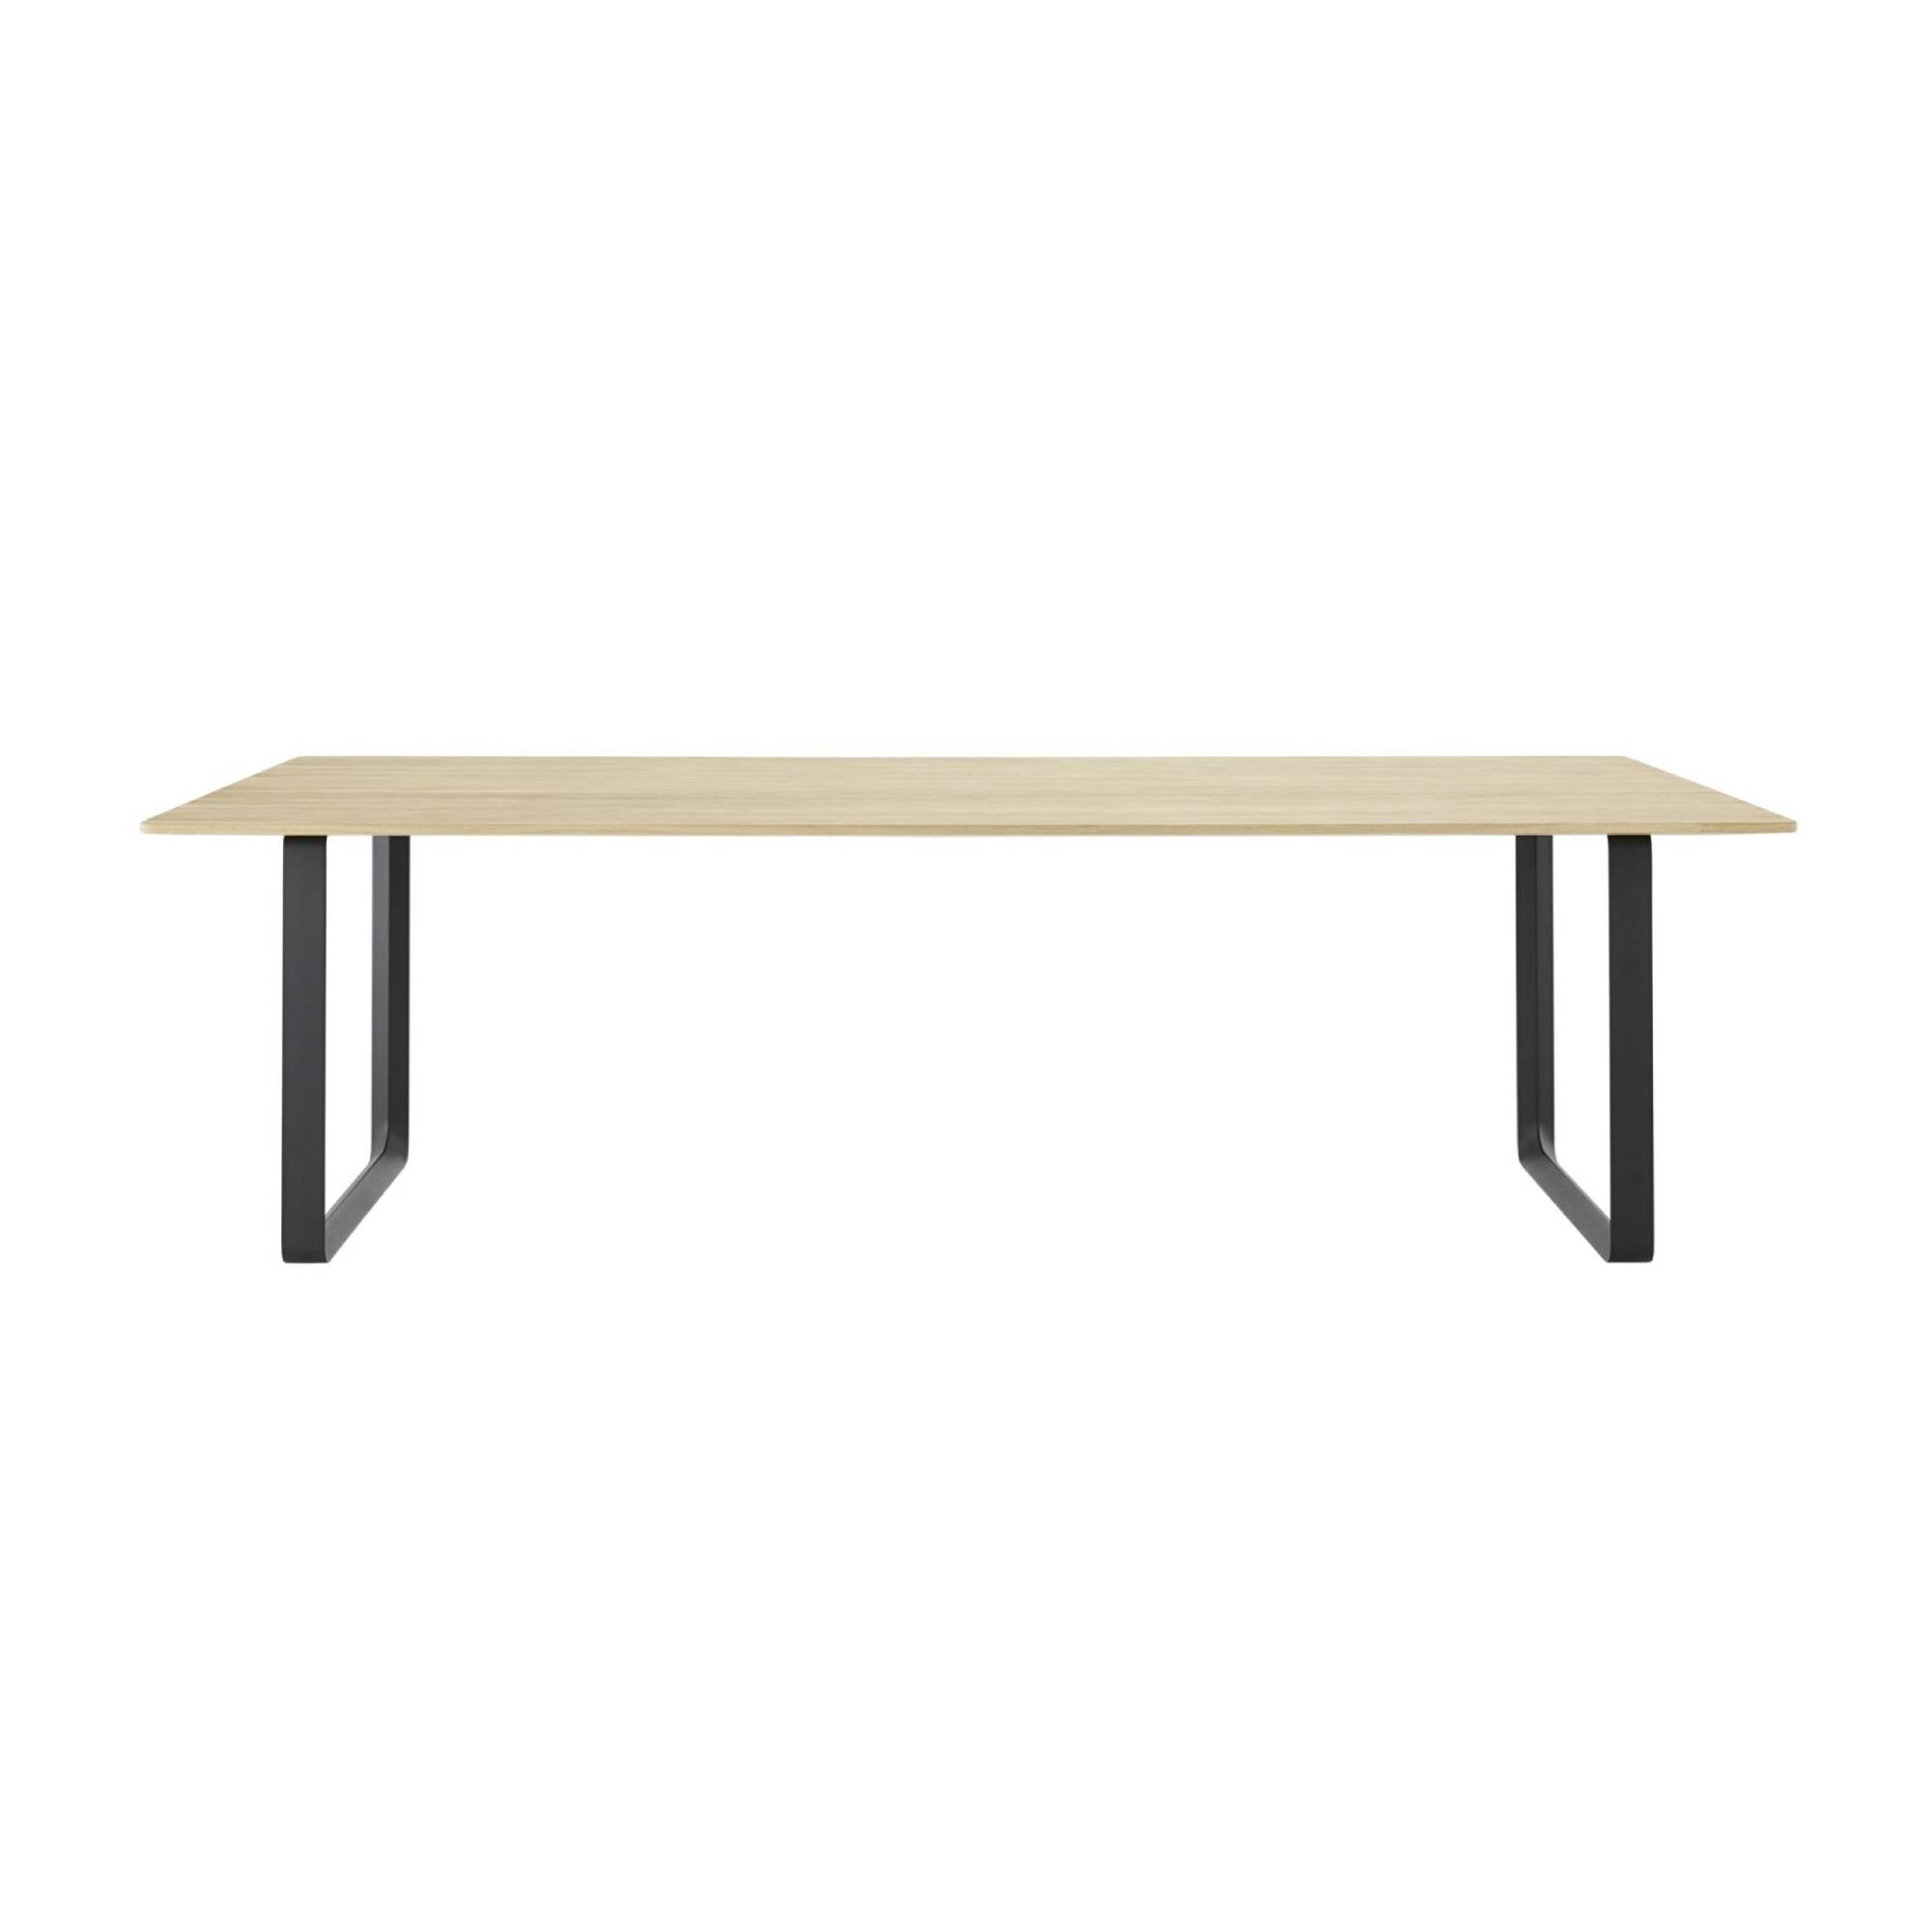 70/70 Table: Solid Oak + Extra Large + Black